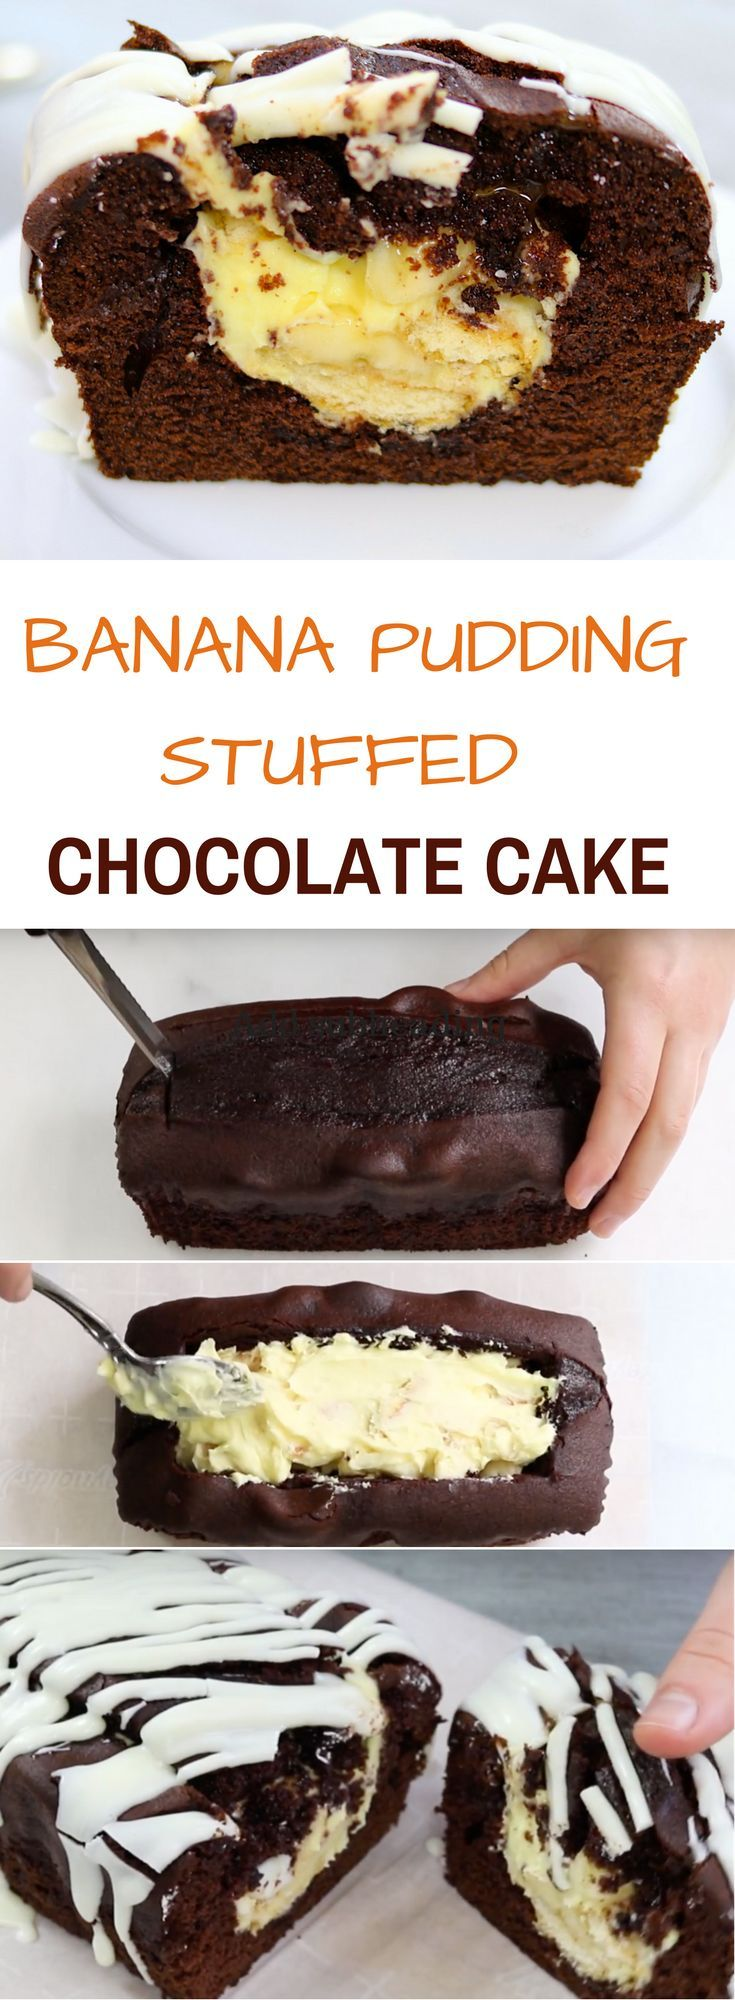 Banana Pudding Stuffed Chocolate Cake: the tasty banana pudding is hidden inside of the chocolate cake! This amazing recipe will take your love for cake to the next level!